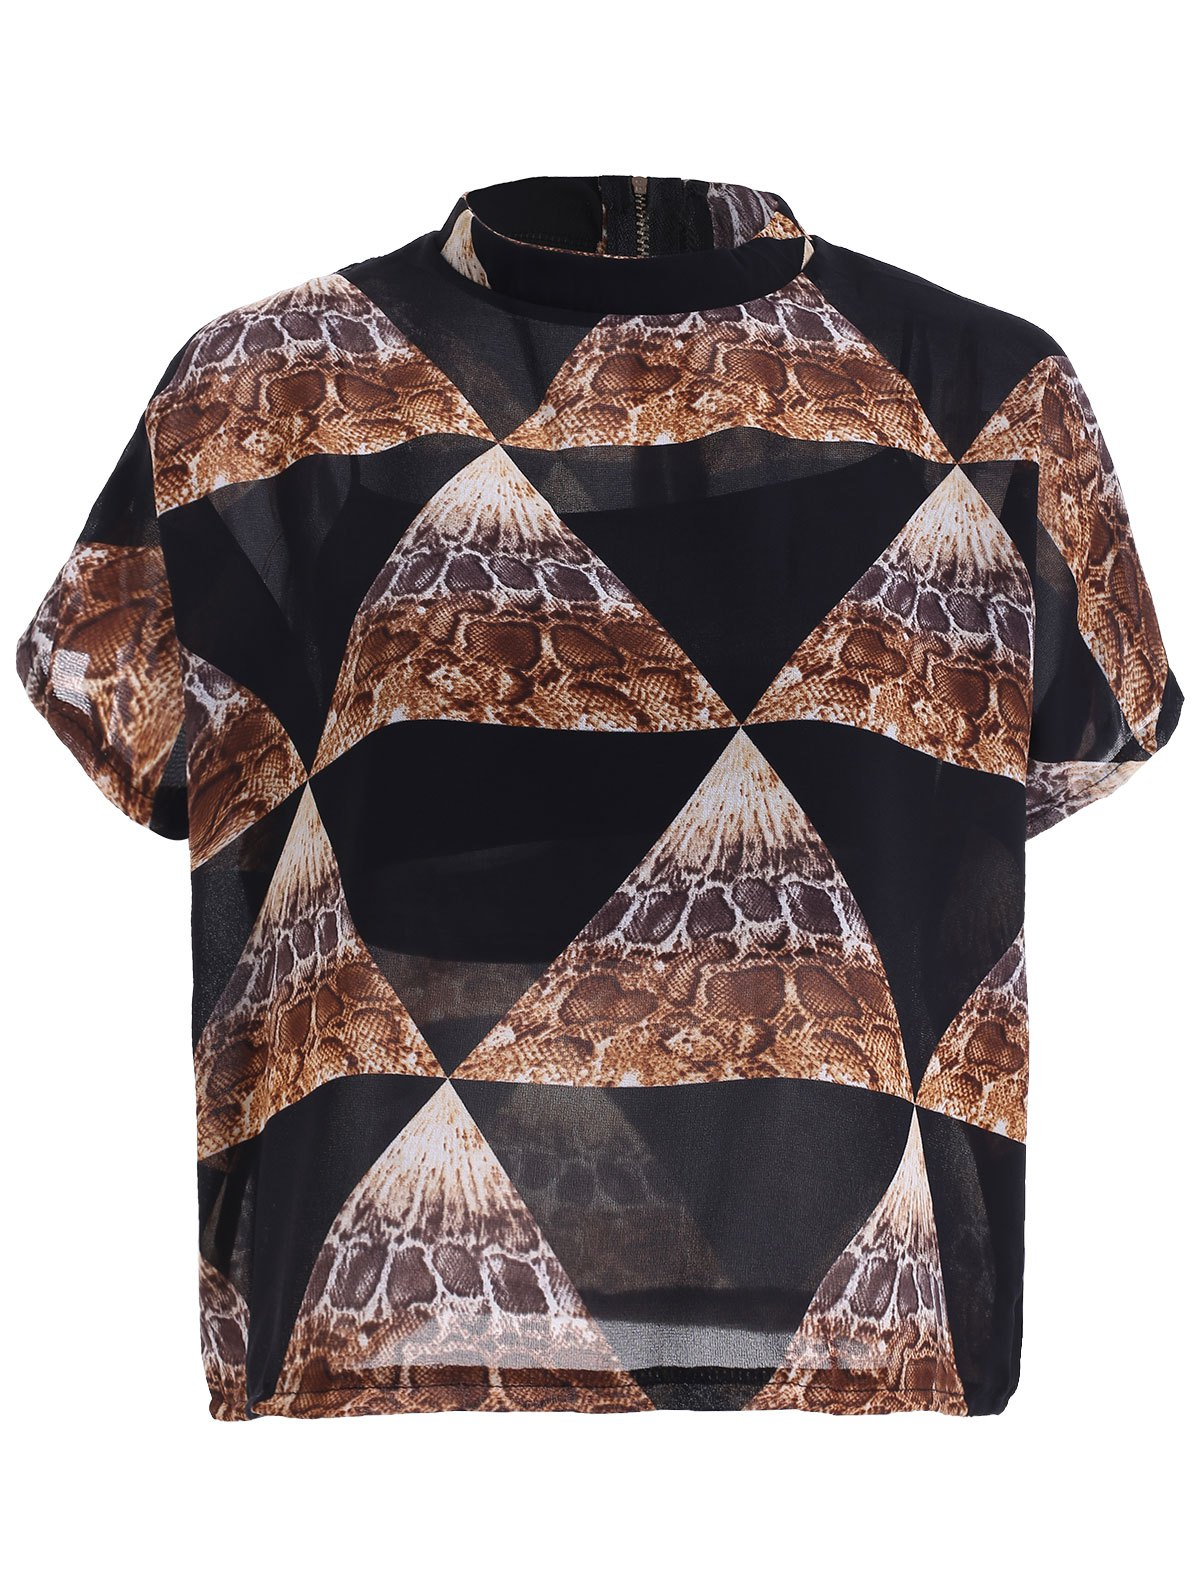 Retro Geometric Printed Chiffon Blouse For Women - BLACK ONE SIZE(FIT SIZE XS TO M)